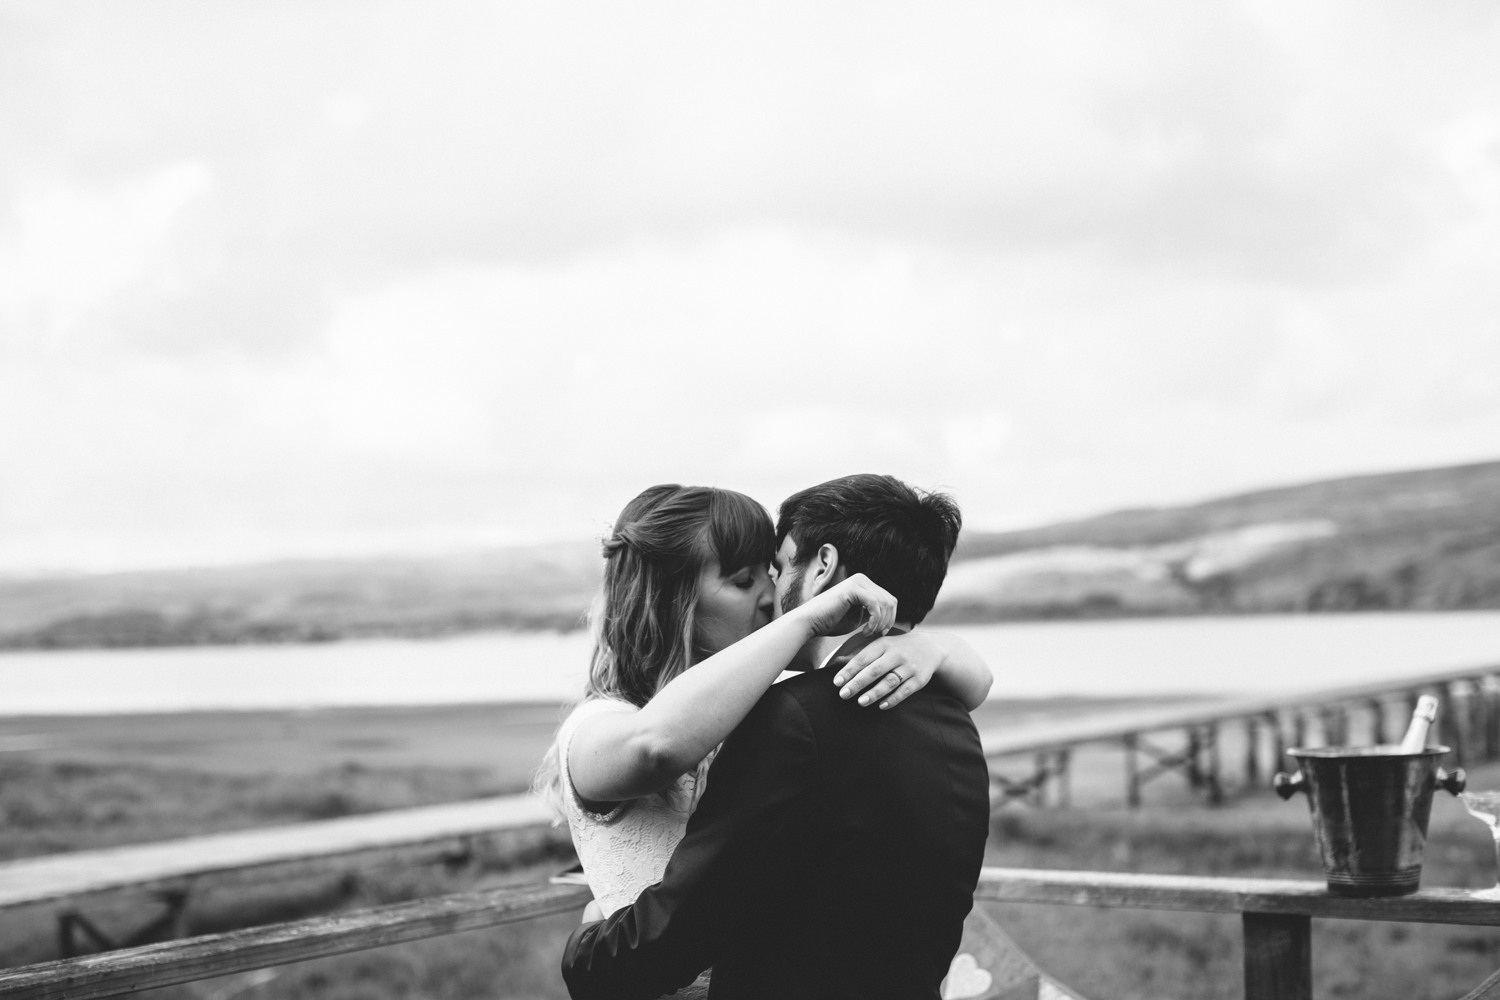 Point Reyes Inverness Wedding Photographer Rachelle Derouin-49.jpg